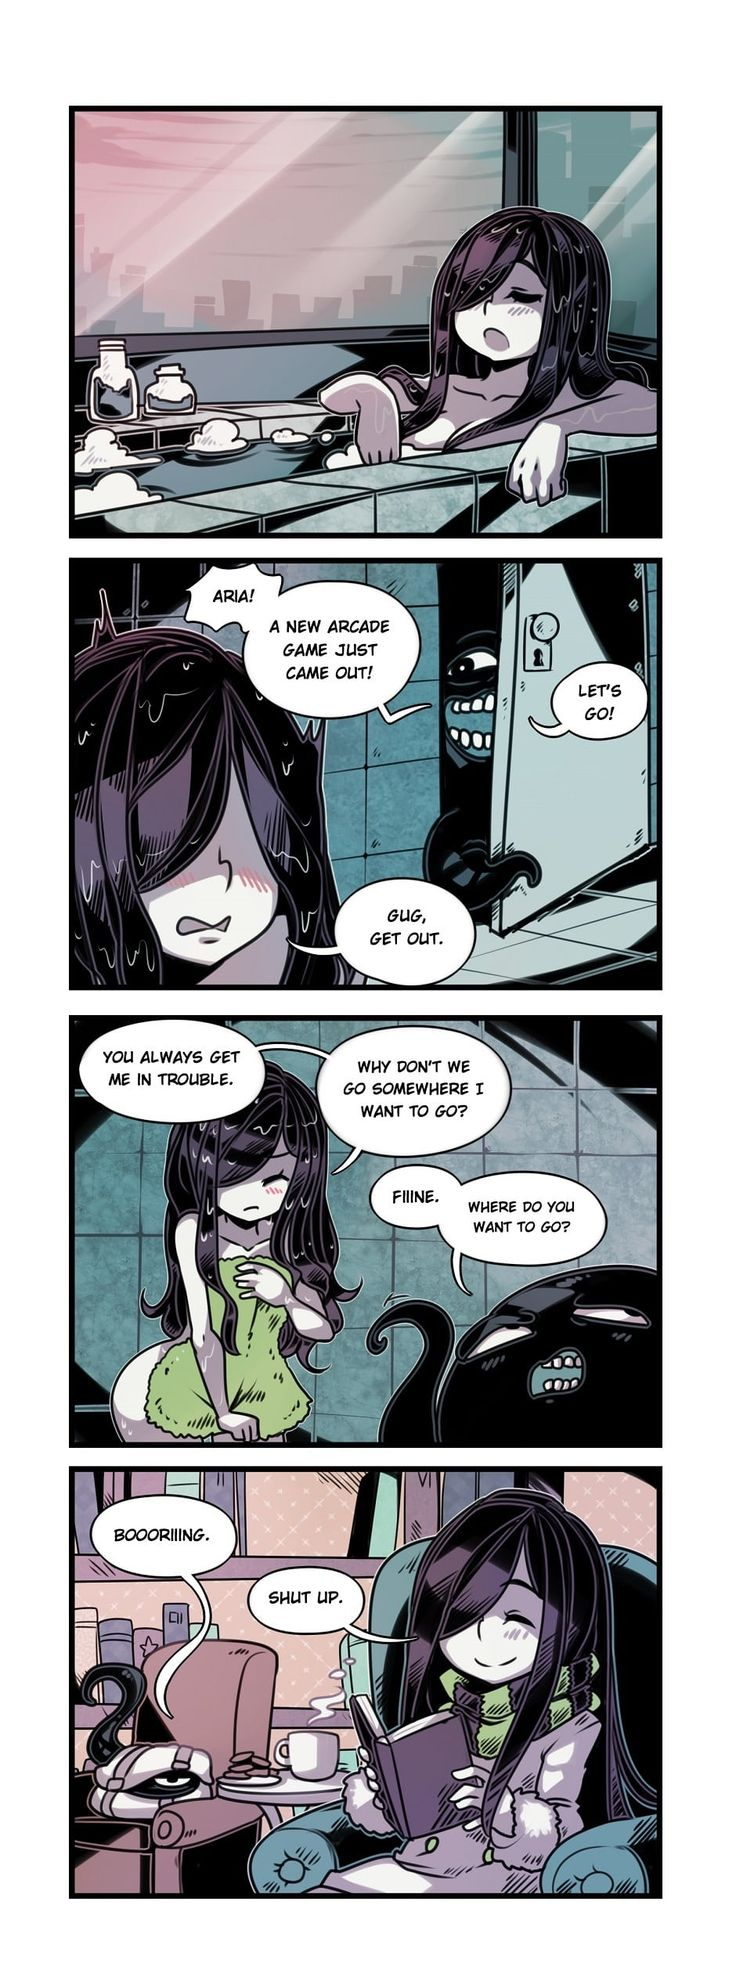 The Crawling City :: Episode 30 - What Aria Wants | Tapastic Comics - image 1